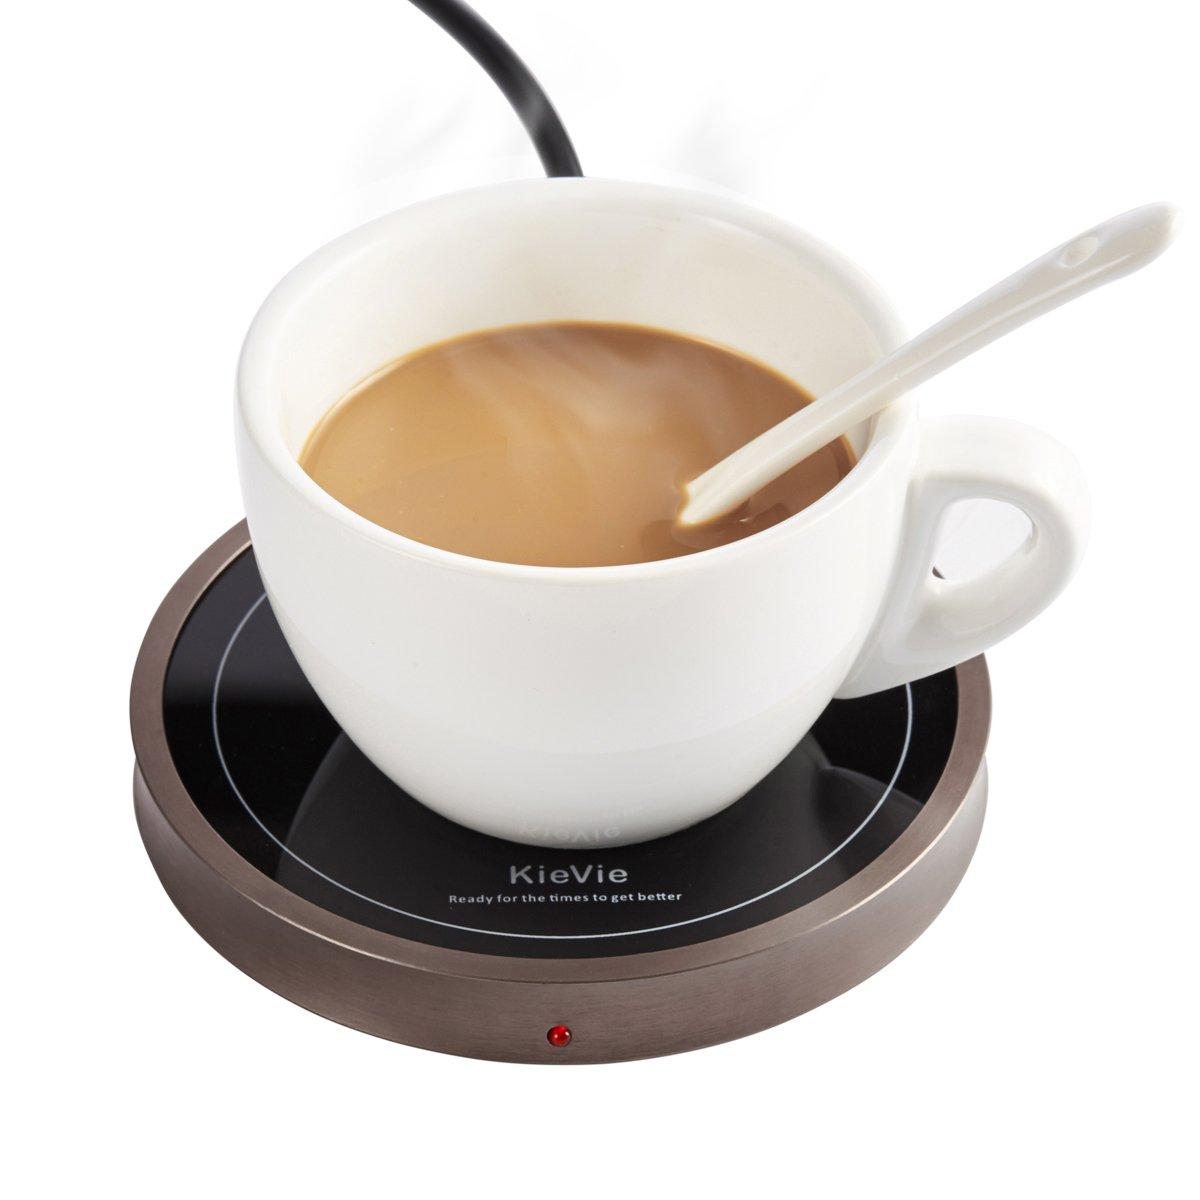 KieVie Electric Coffee Mug Warmer Home/Office Use, Pyroceram Plate Metal Shell, Waterproof Mug Warmer Warming Beverage Water, Such as Coffee, Milk, Tea, Cocoa, Soup, Black Victoria World Bwarmer001B